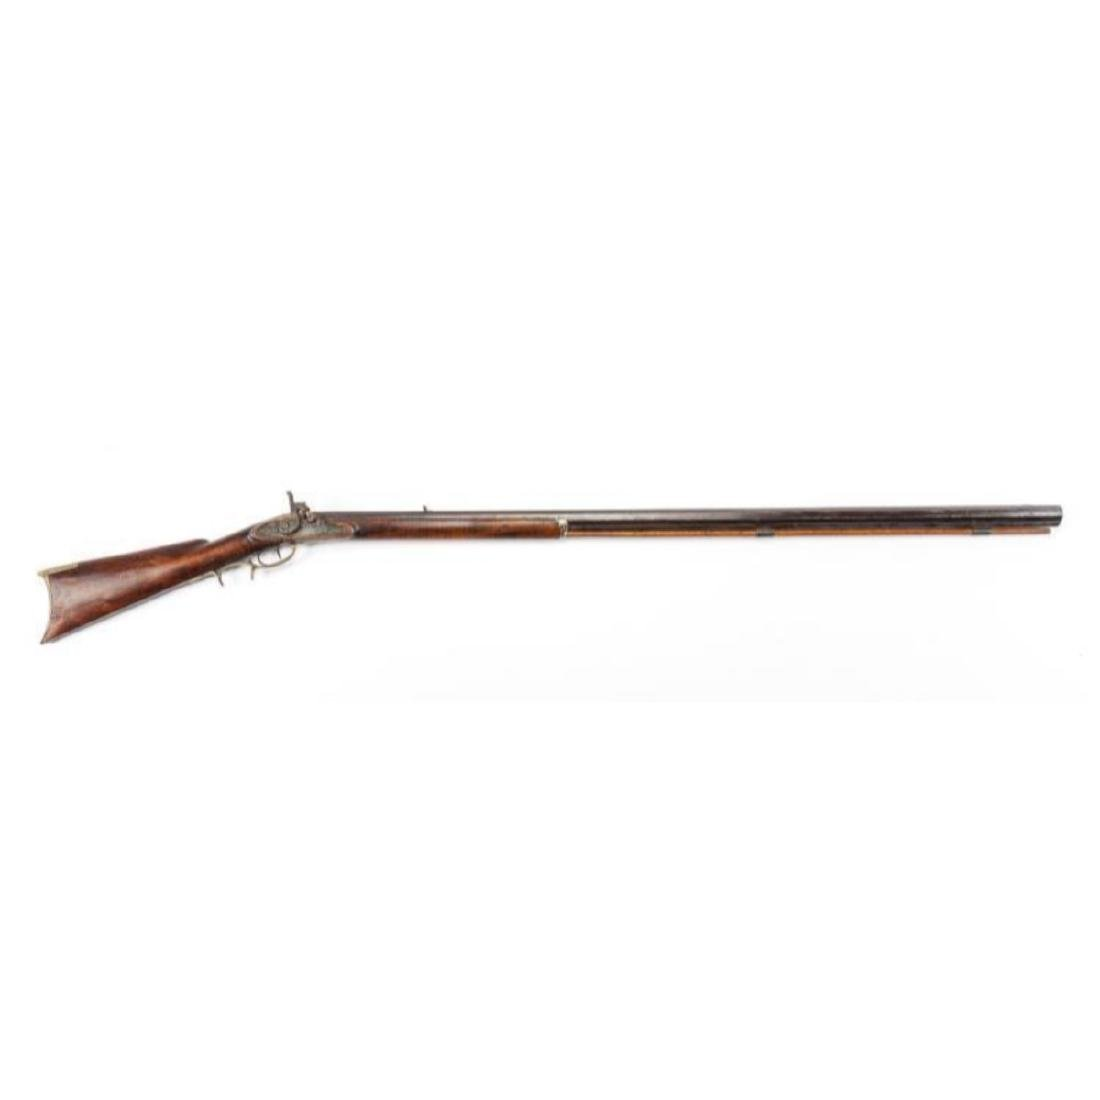 Unmarked 19th C Percussion Musket